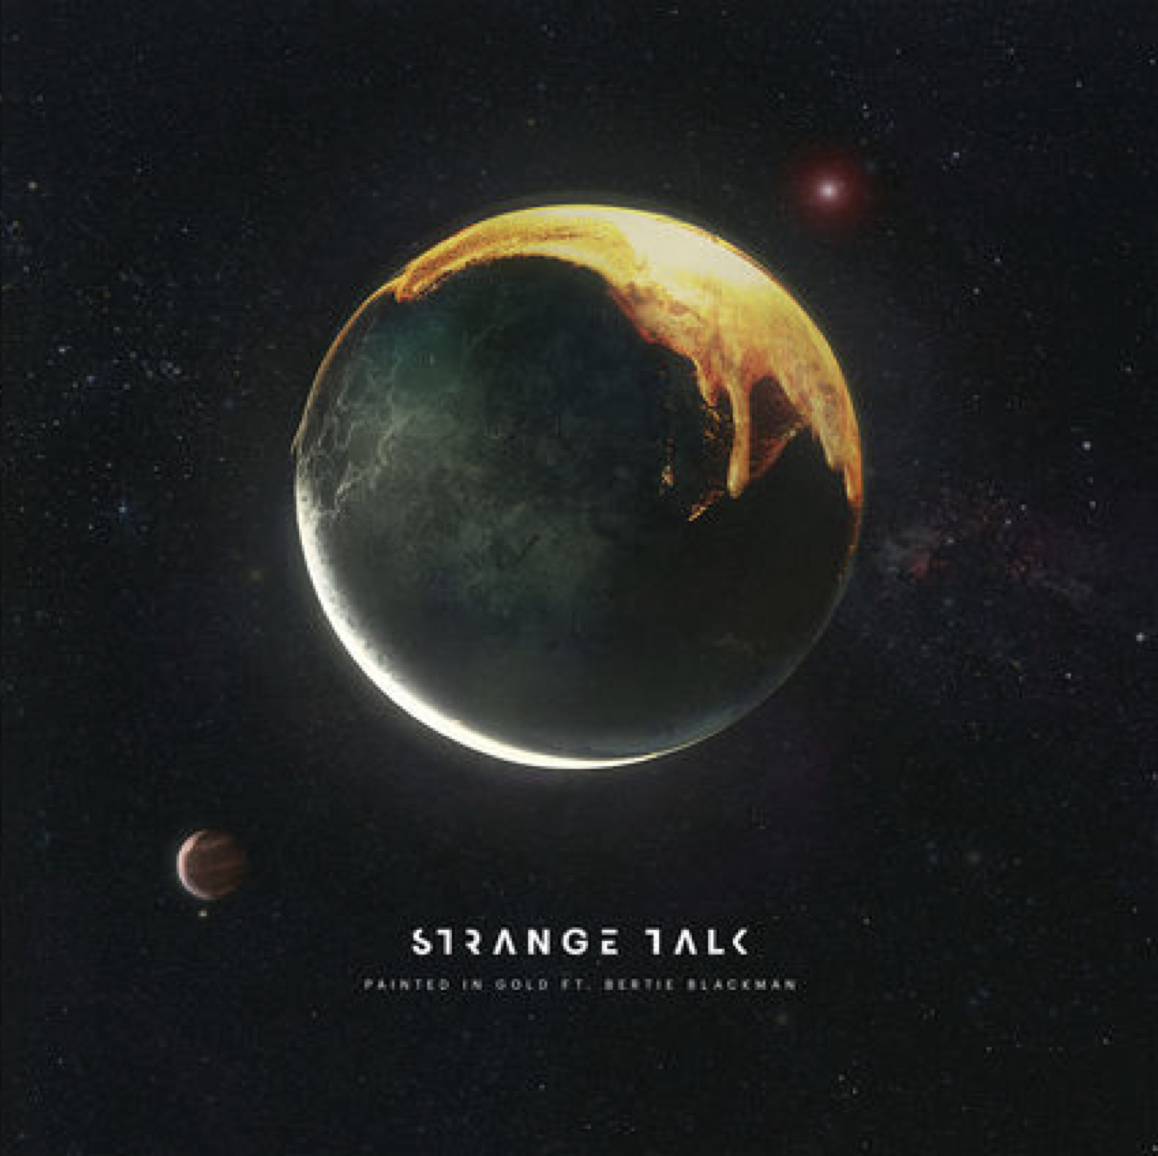 Painted in Gold - Strange Talk feat. Bertie Blackman - Co-writer